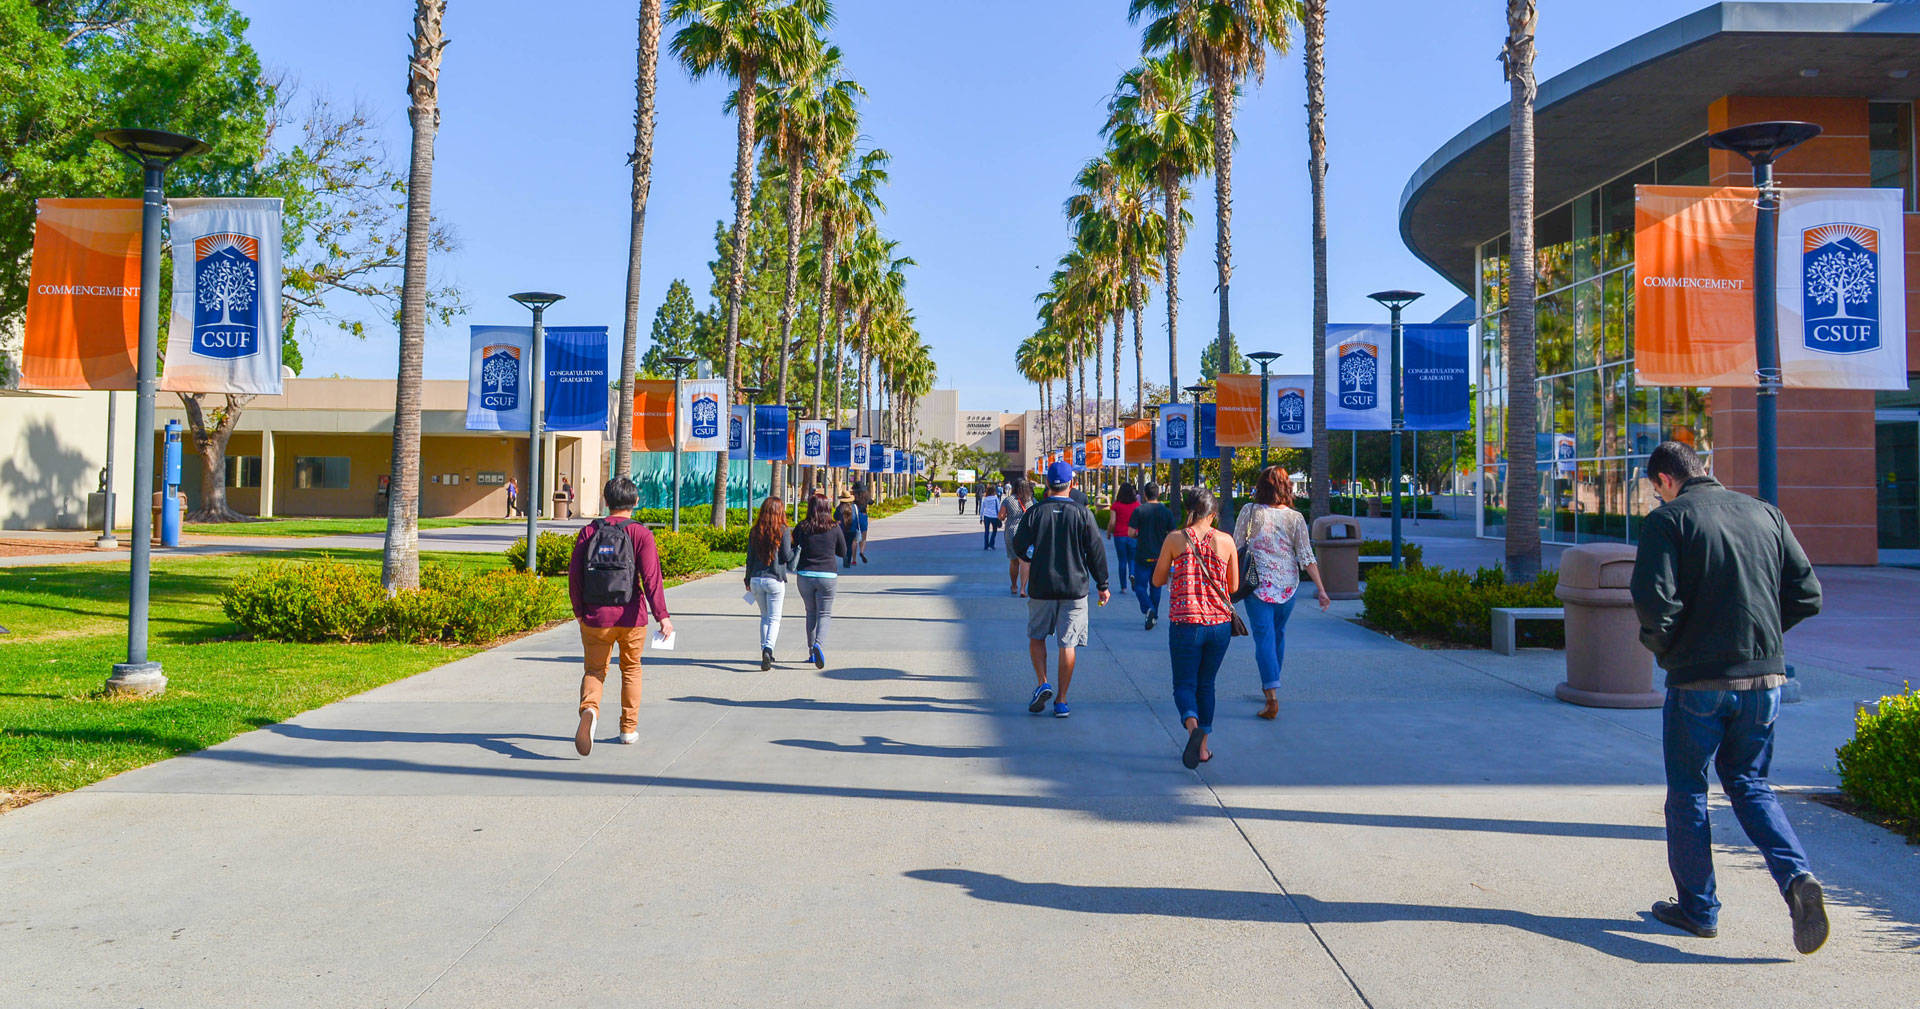 Students walk on the campus of California State University, Fullerton. Jack Miller/Flickr